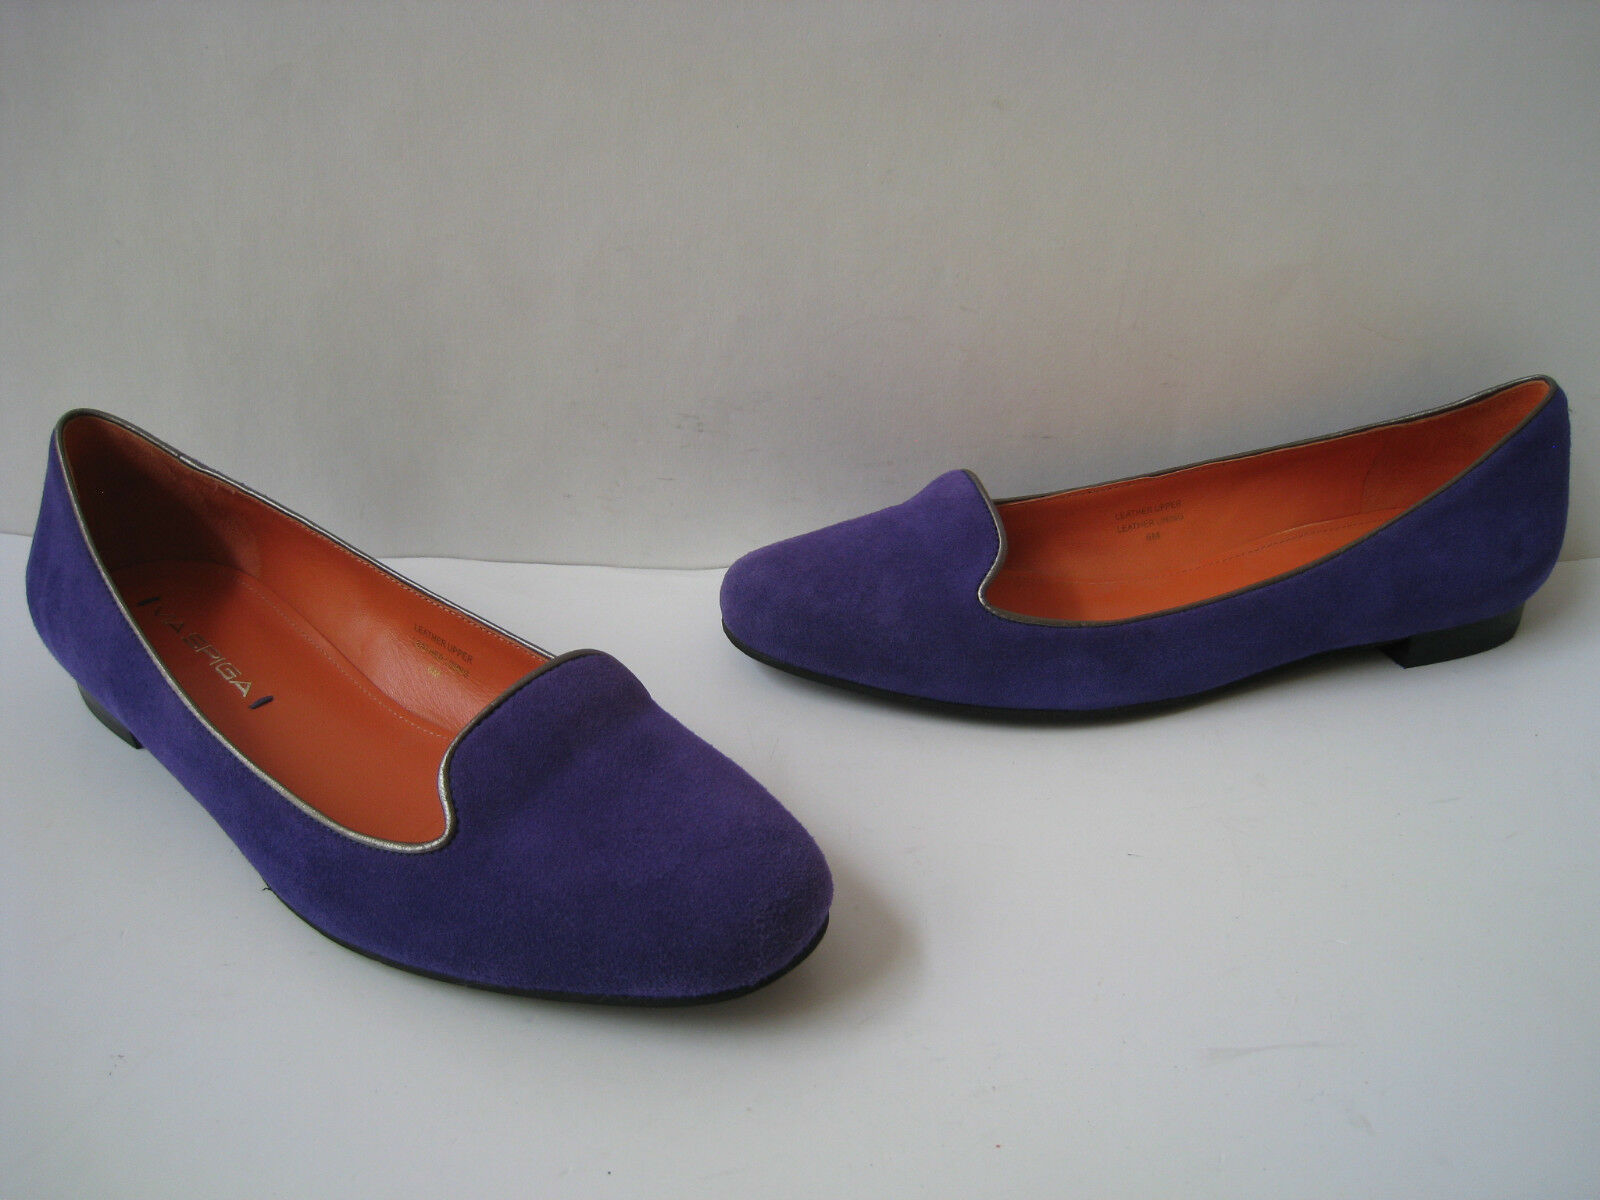 VIA SPIGA PURPLE SUEDE LEATHER BALLET FLATS Donna size US 6M HOT  RARE GREAT